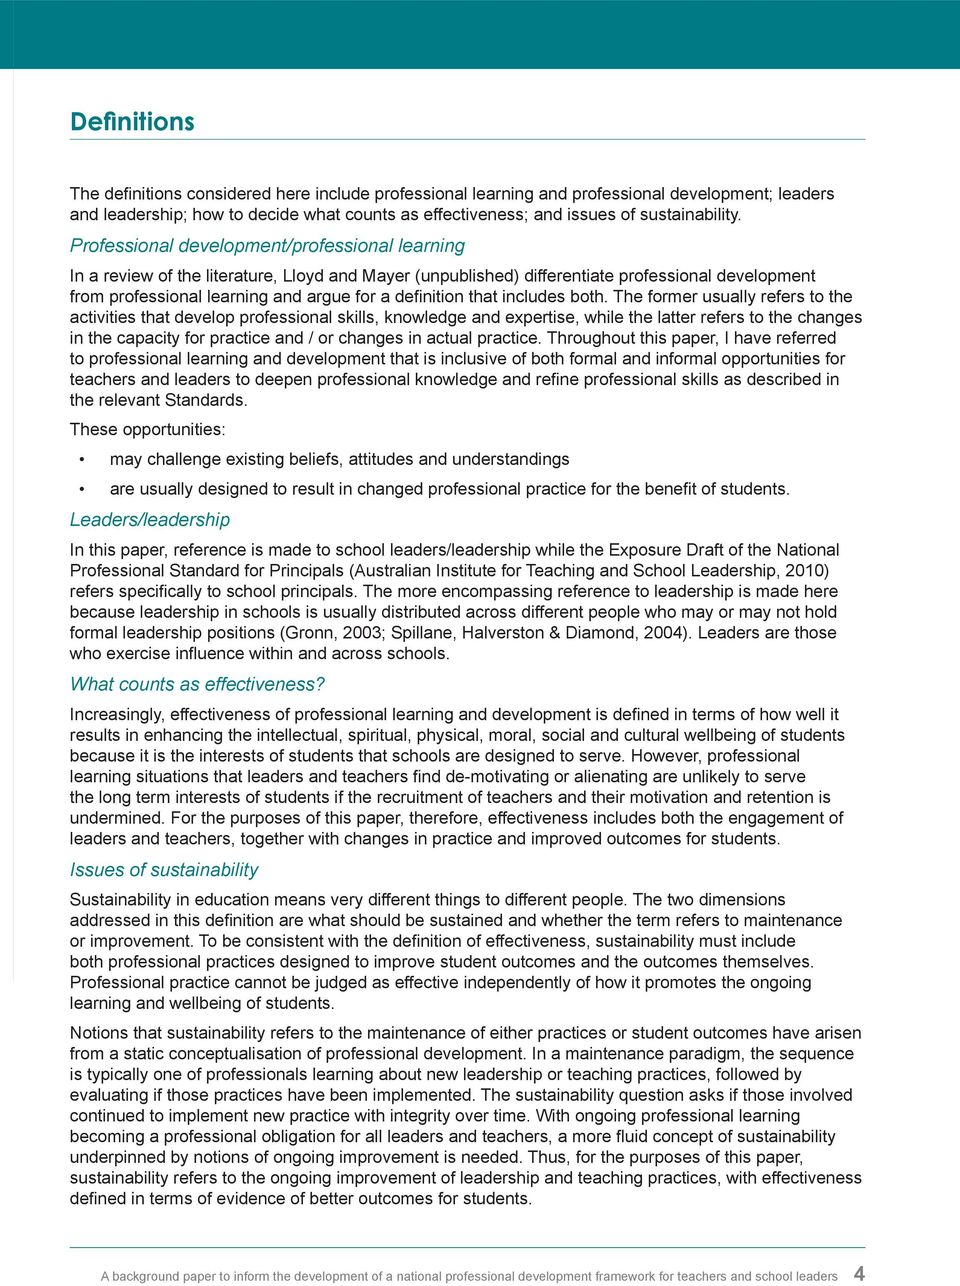 Professional development/professional learning In a review of the literature, Lloyd and Mayer (unpublished) differentiate professional development from professional learning and argue for a